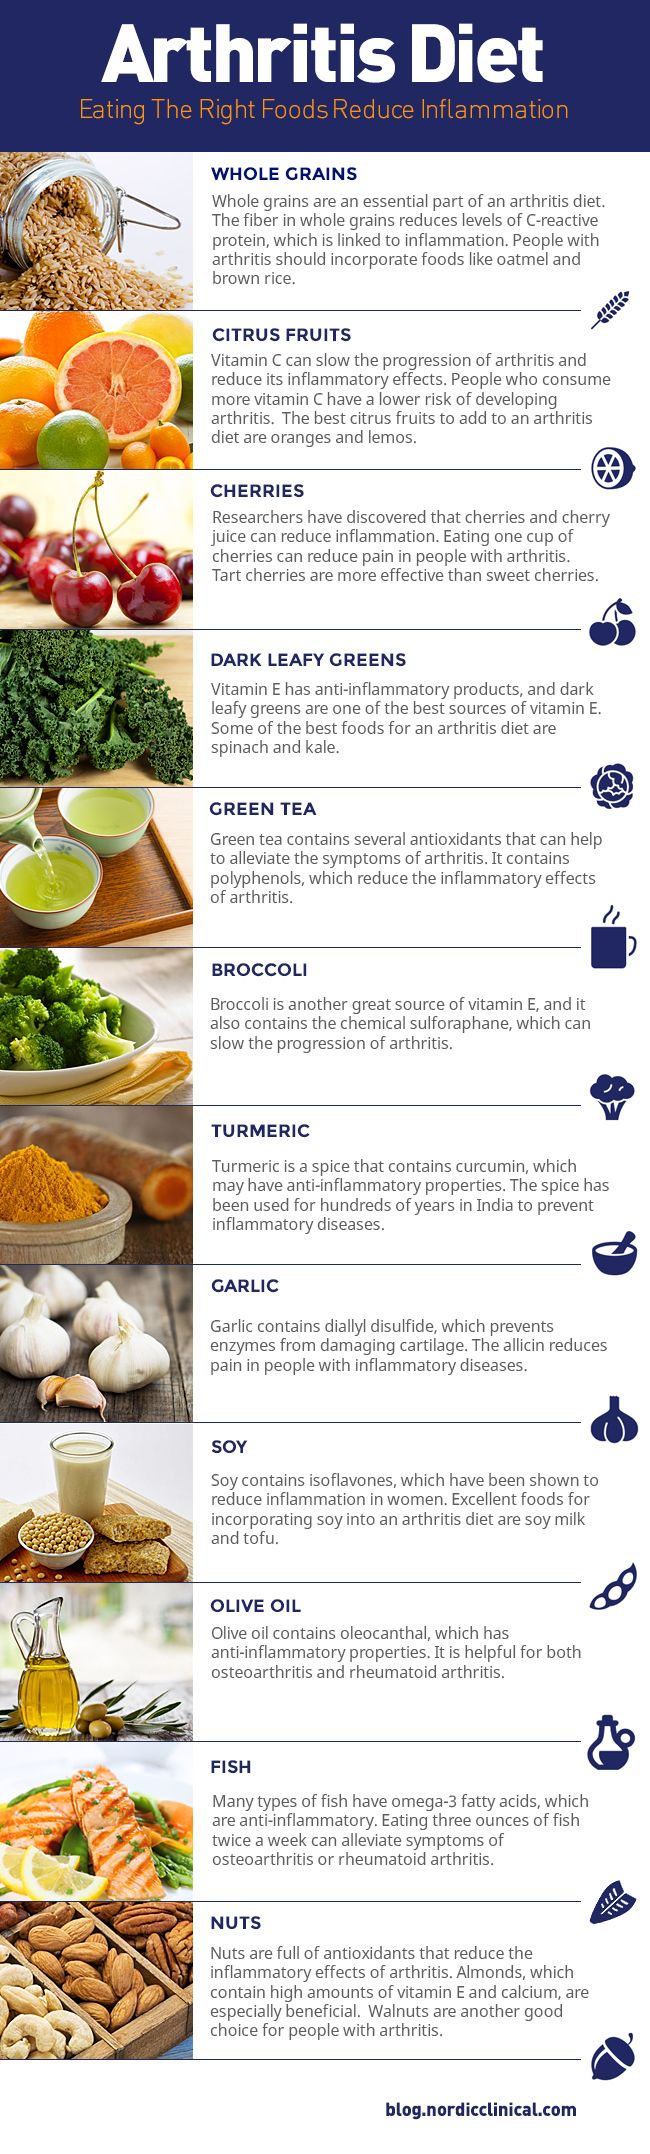 Arthritis Diet: The Best Foods For Reducing Inflammation Infographic